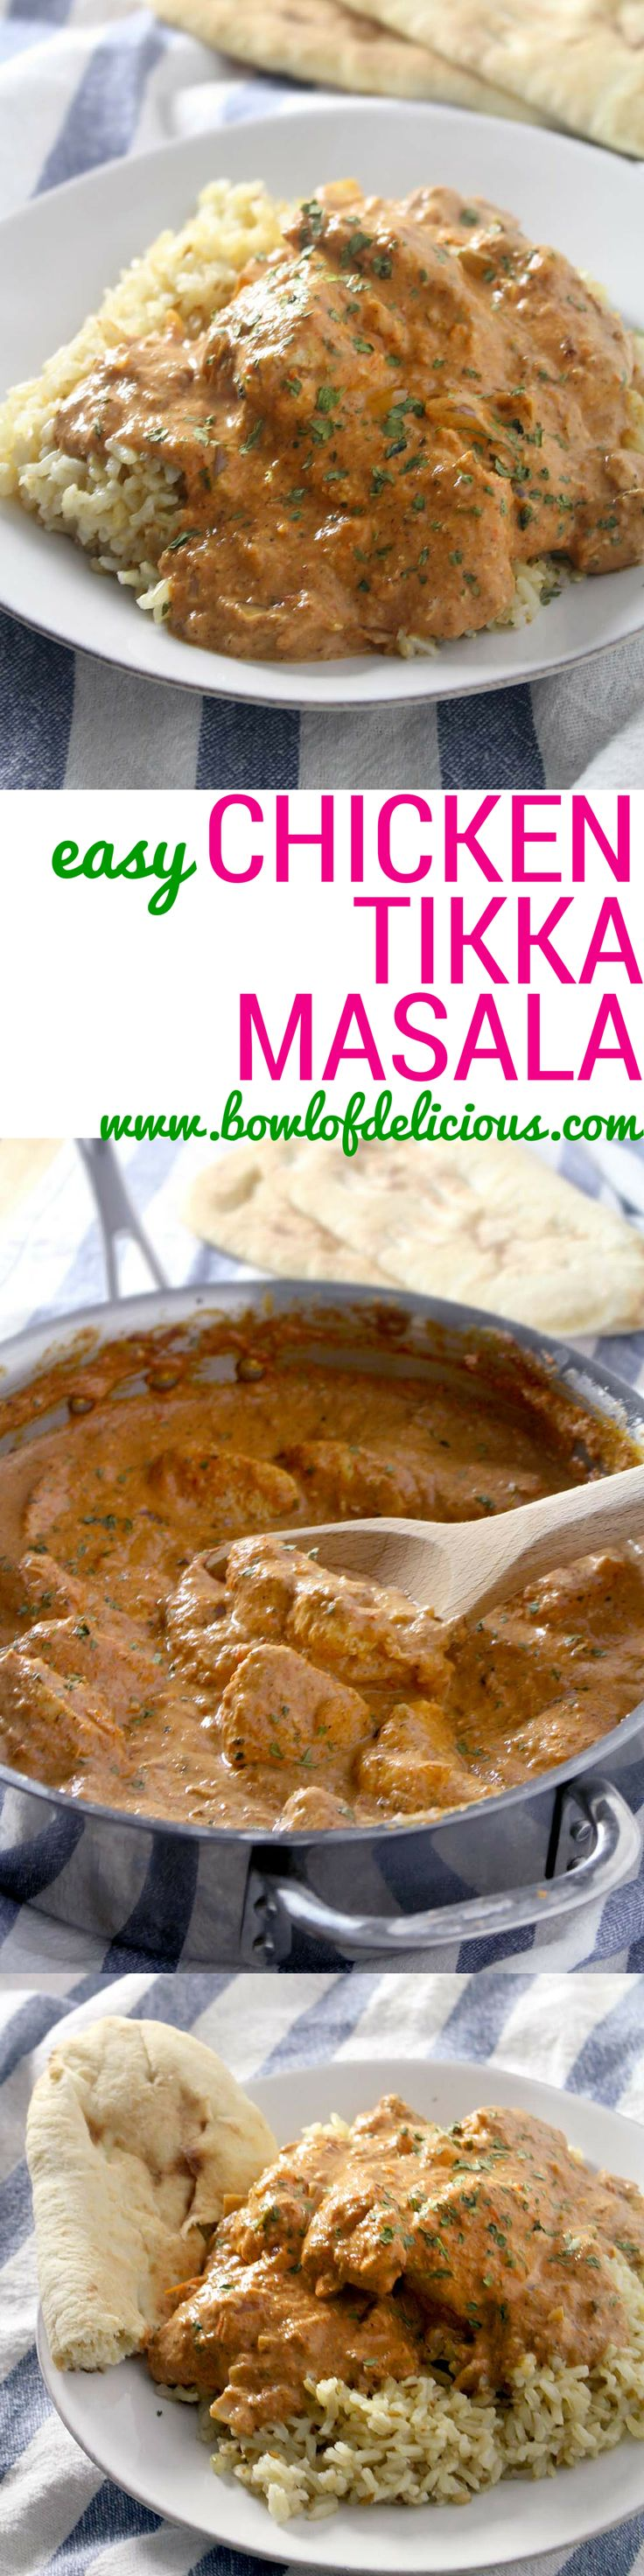 Easy Chicken Tikka Masala- An easy-to-make popular Indian meal that's guaranteed to be healthier (and cheaper!) than at your favorite Indian restaurant without sacrificing taste.